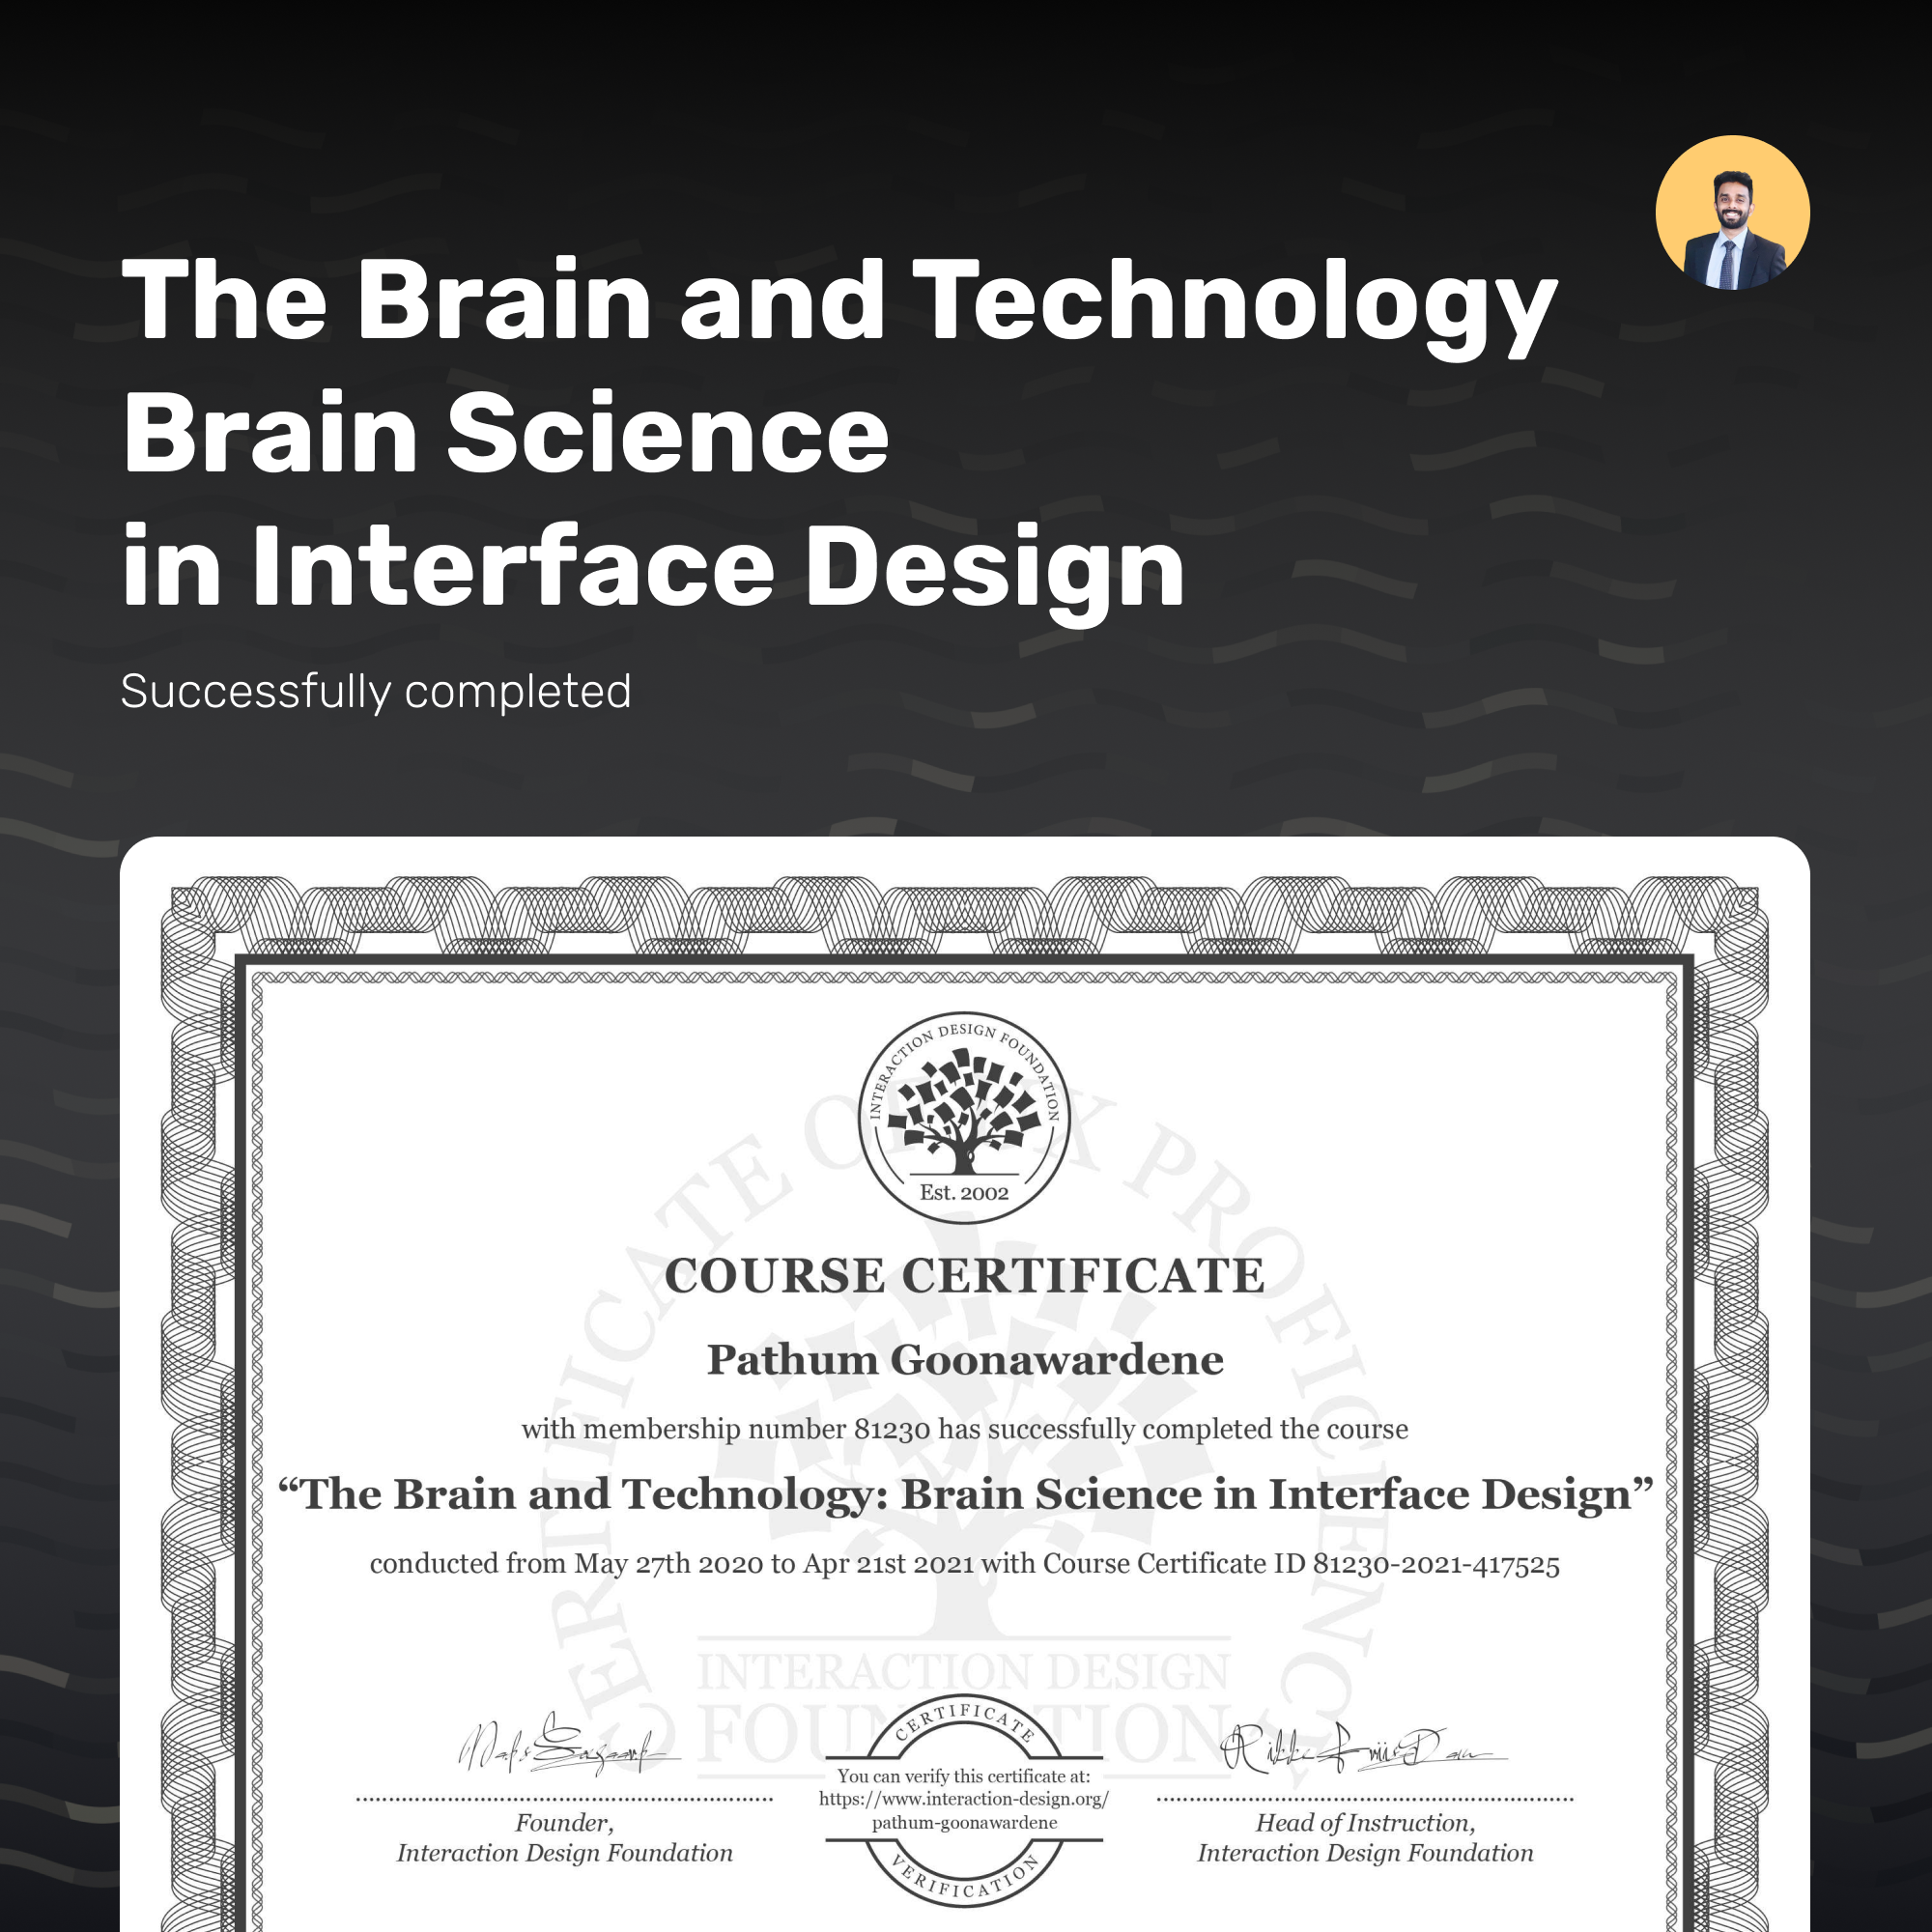 The Brain and Technology: Brain Science in Interface Design